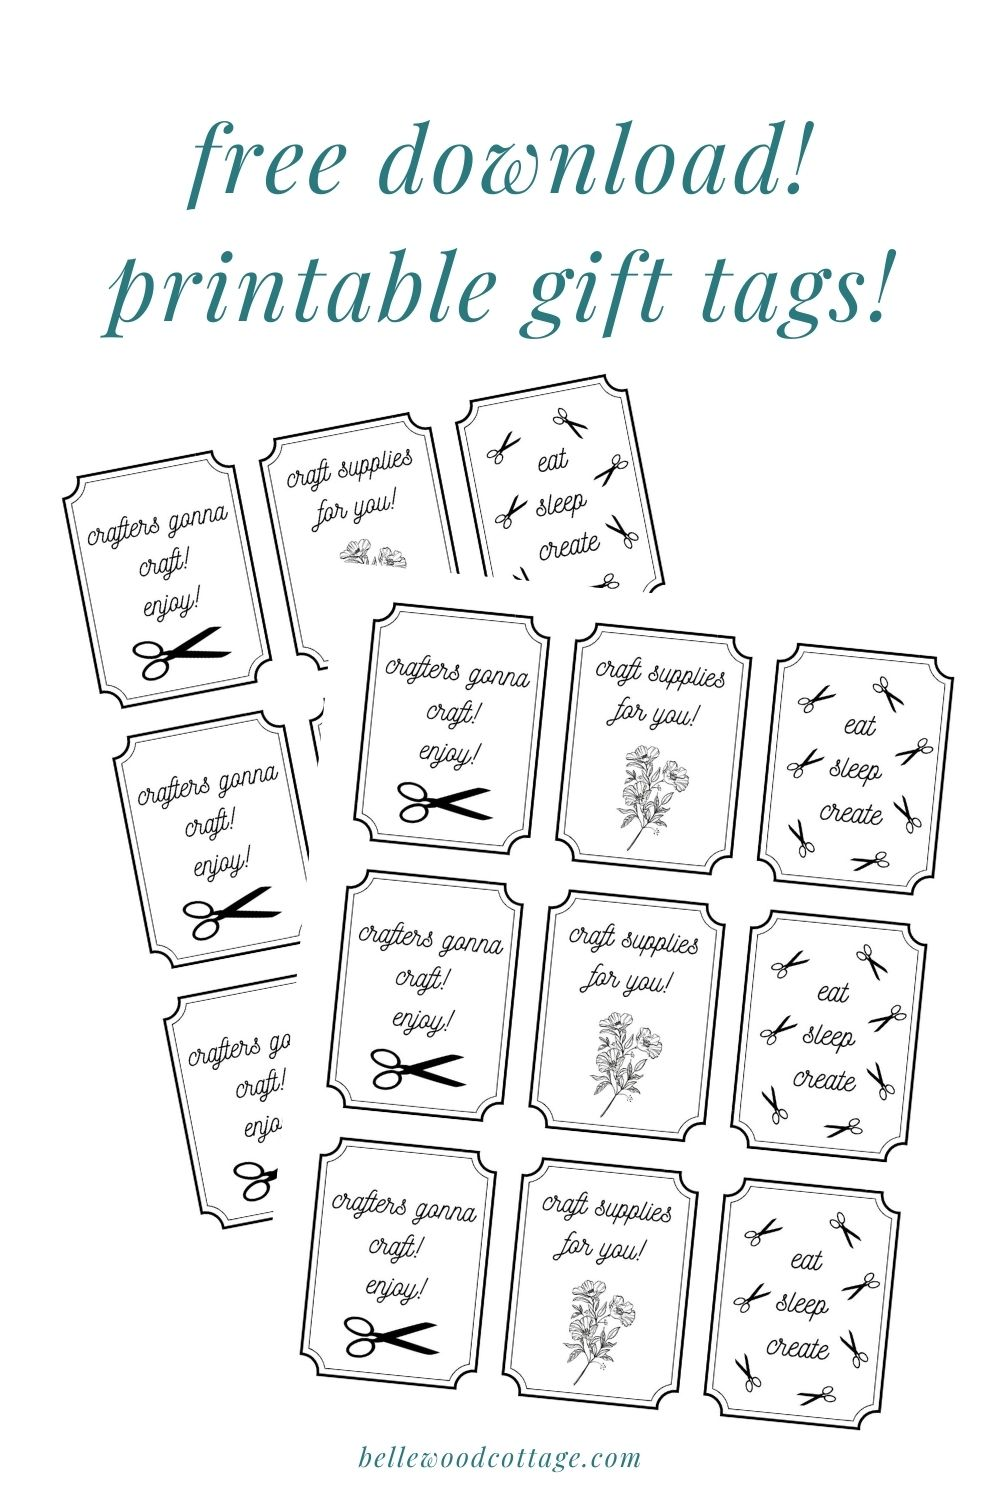 Free printable gift tags for craft supply jars.